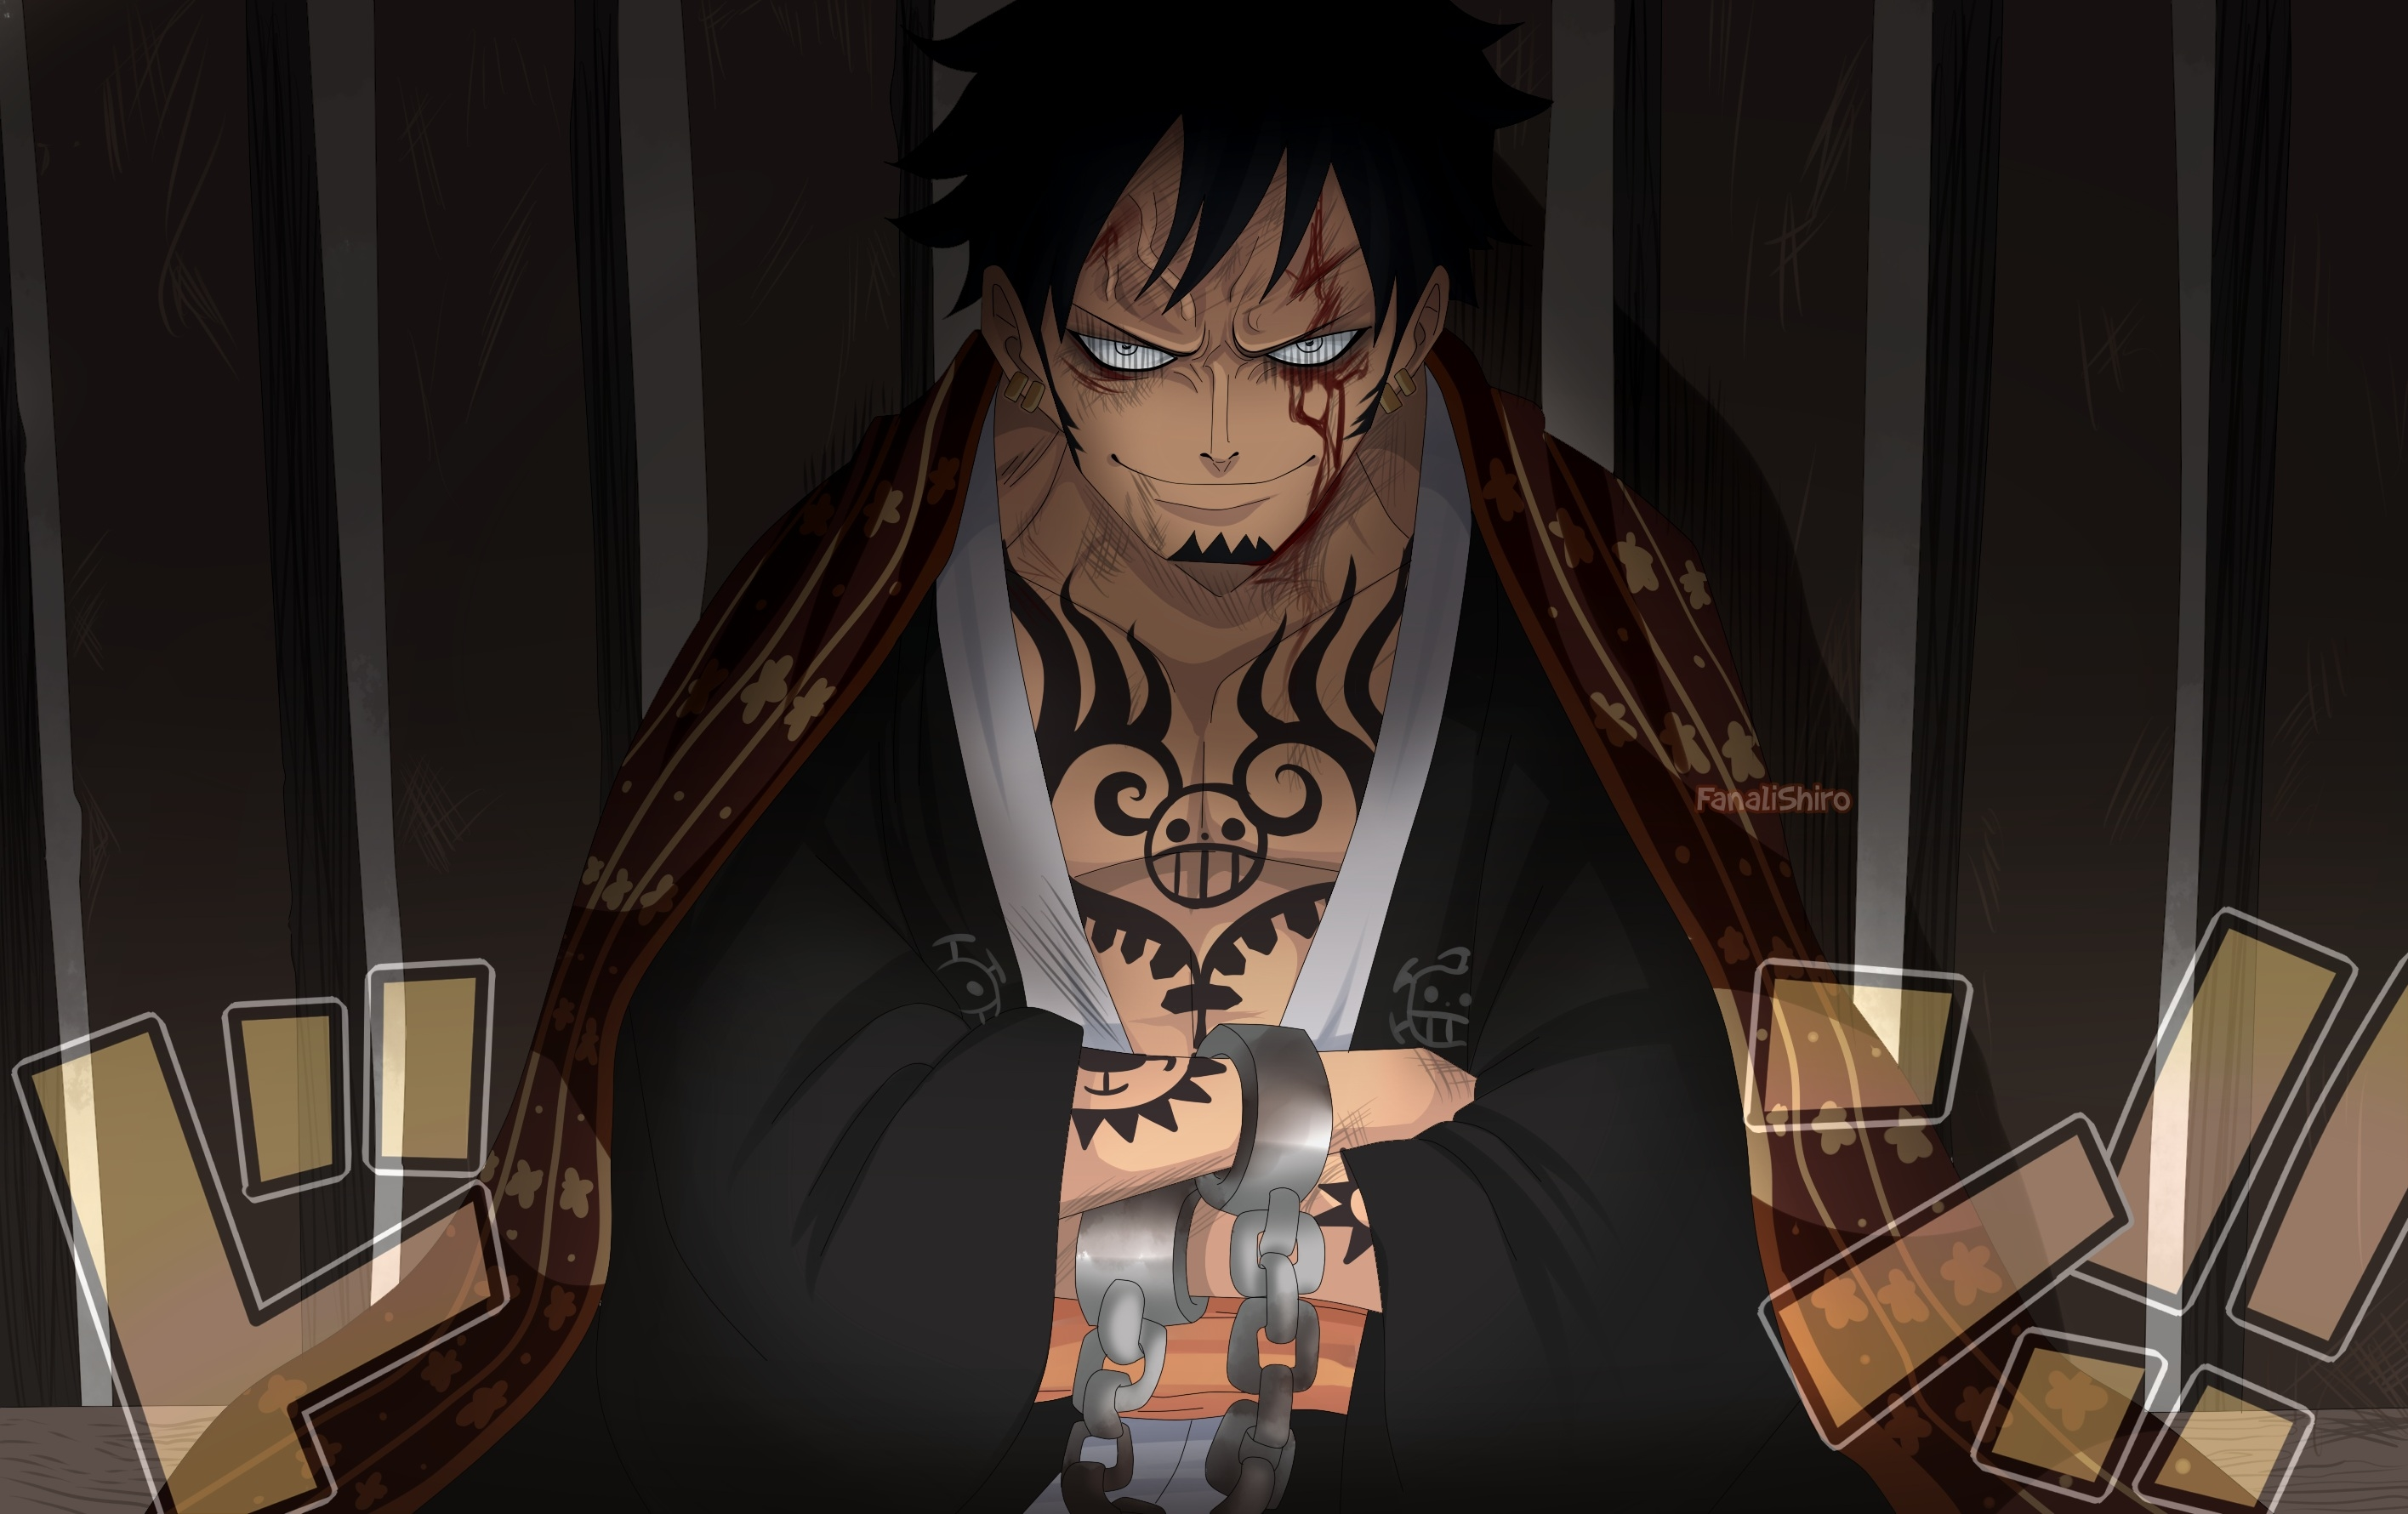 7680x4320 Trafalgar Law From One Piece 8k Wallpaper Hd Anime 4k Wallpapers Images Photos And Background